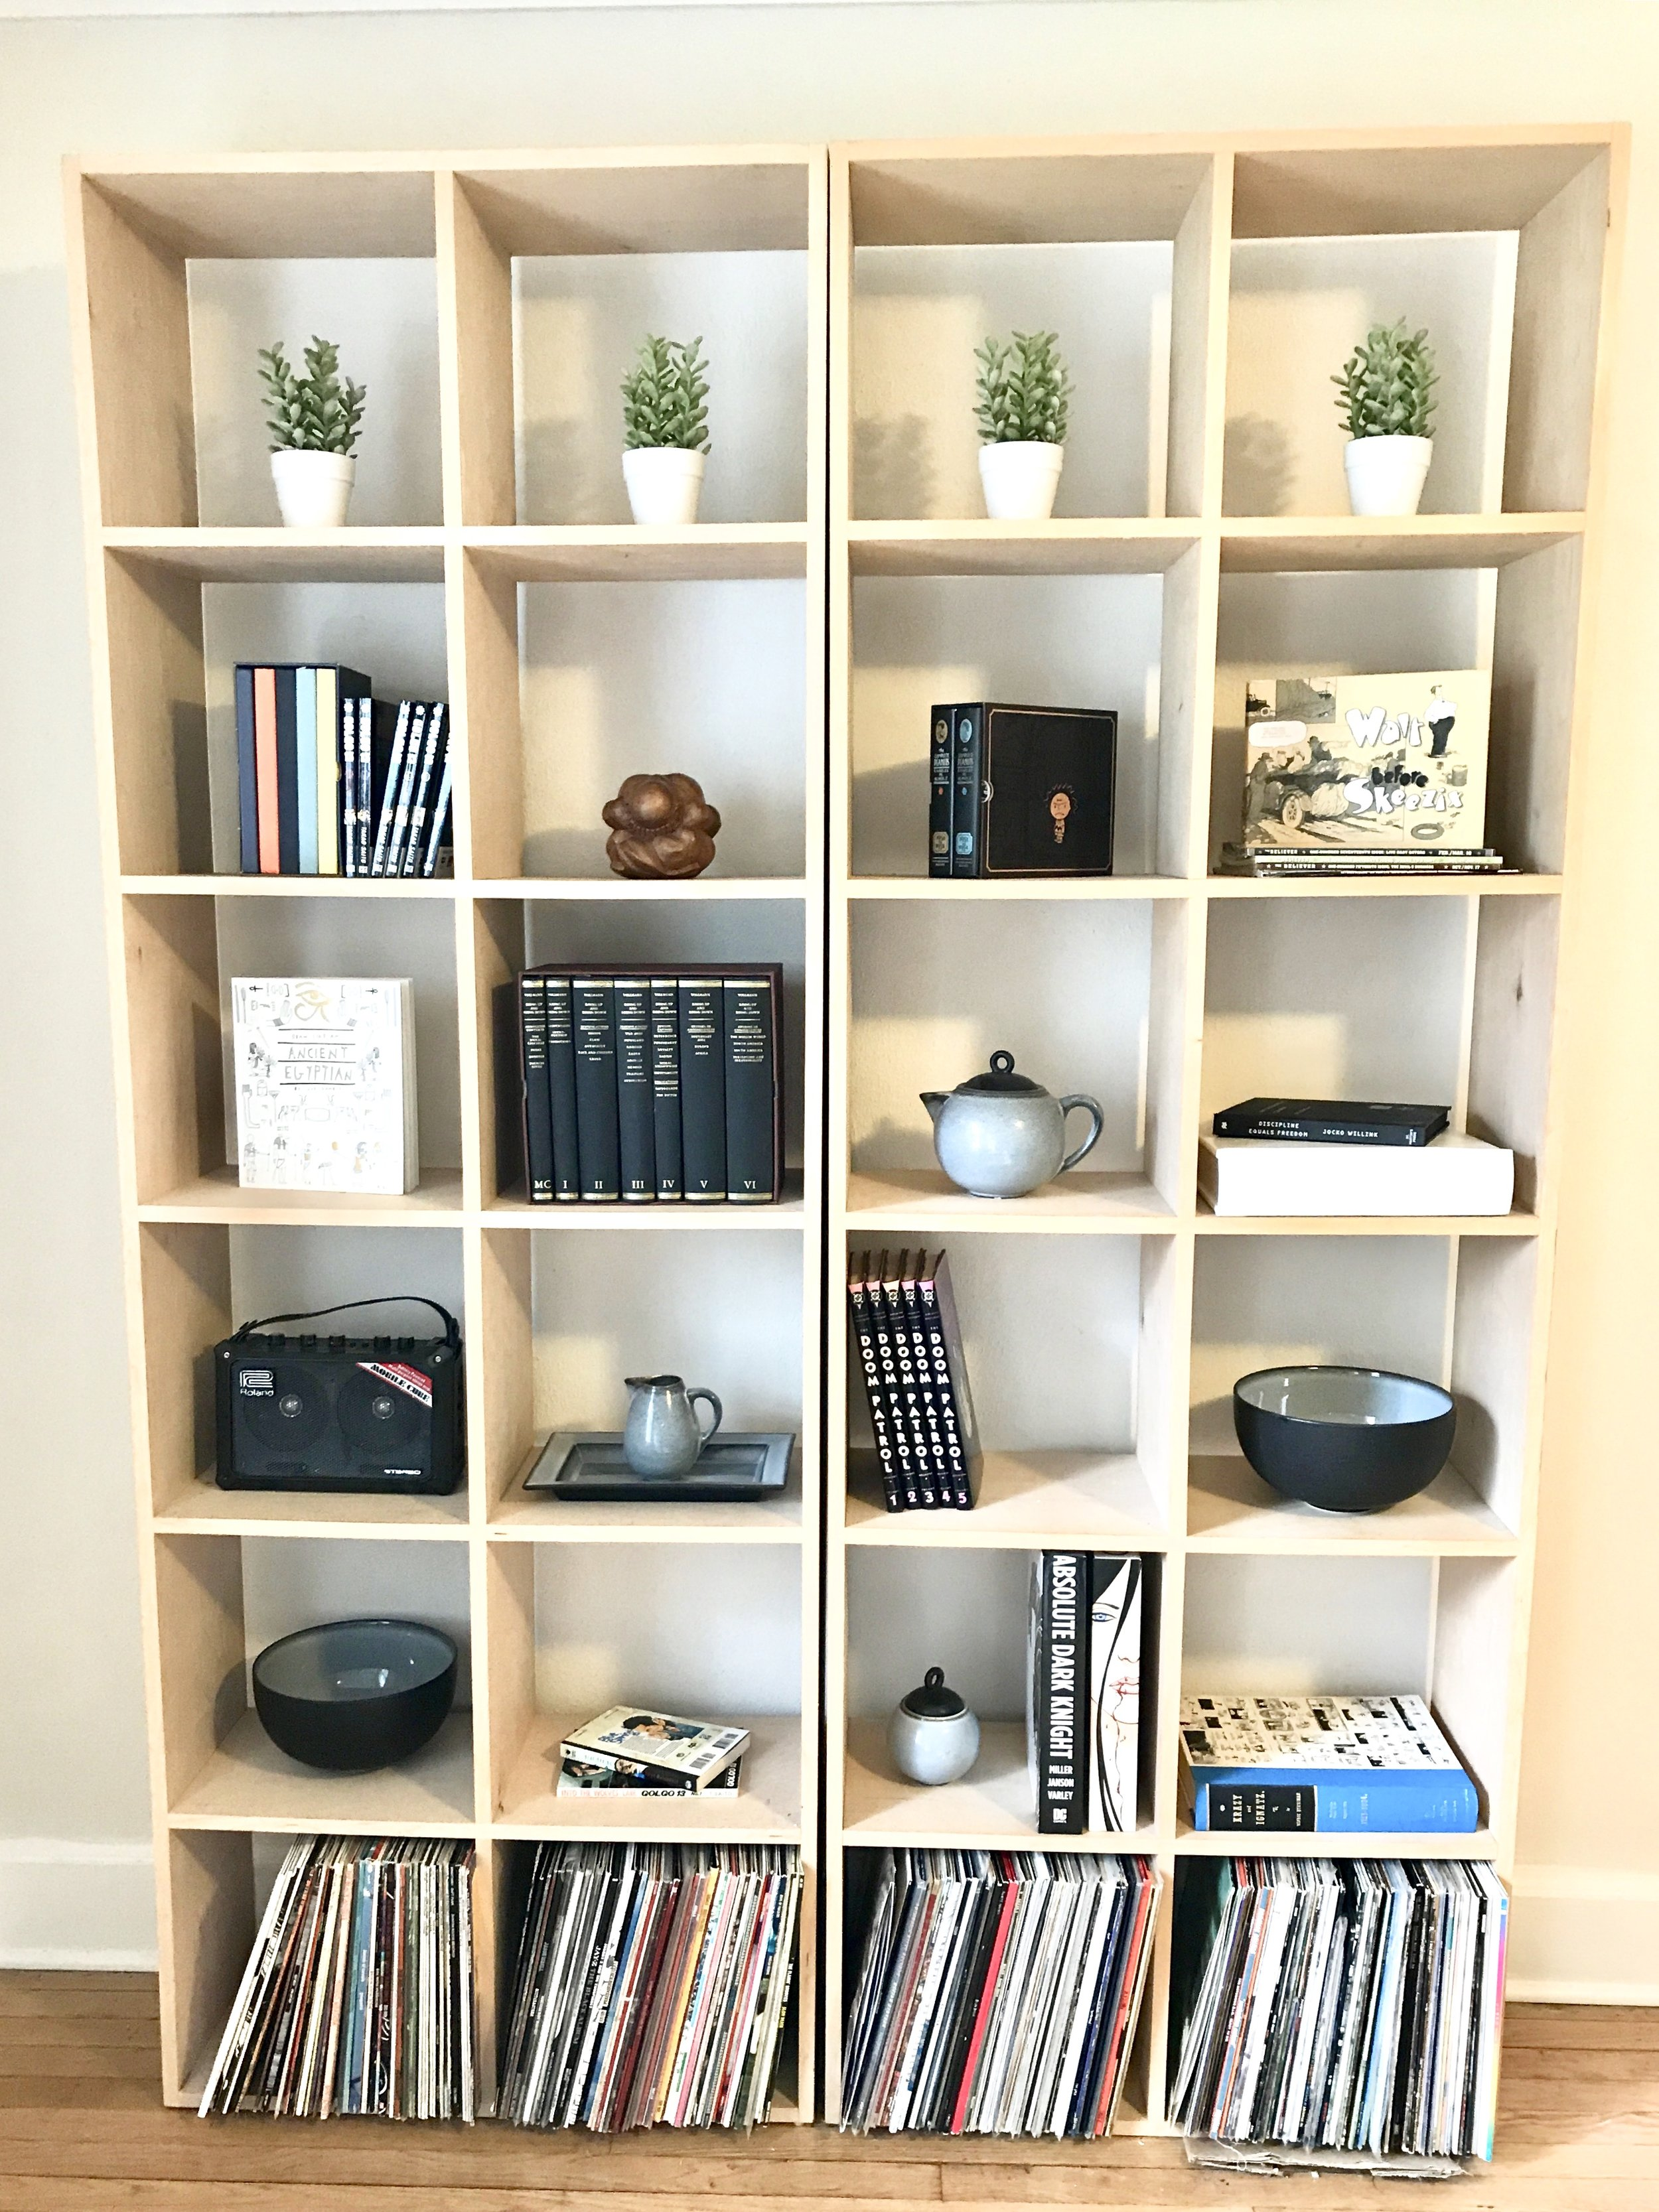 BOOKSHELF AFTER. STYLED BY BEAM&BLOOM INTERIORS.